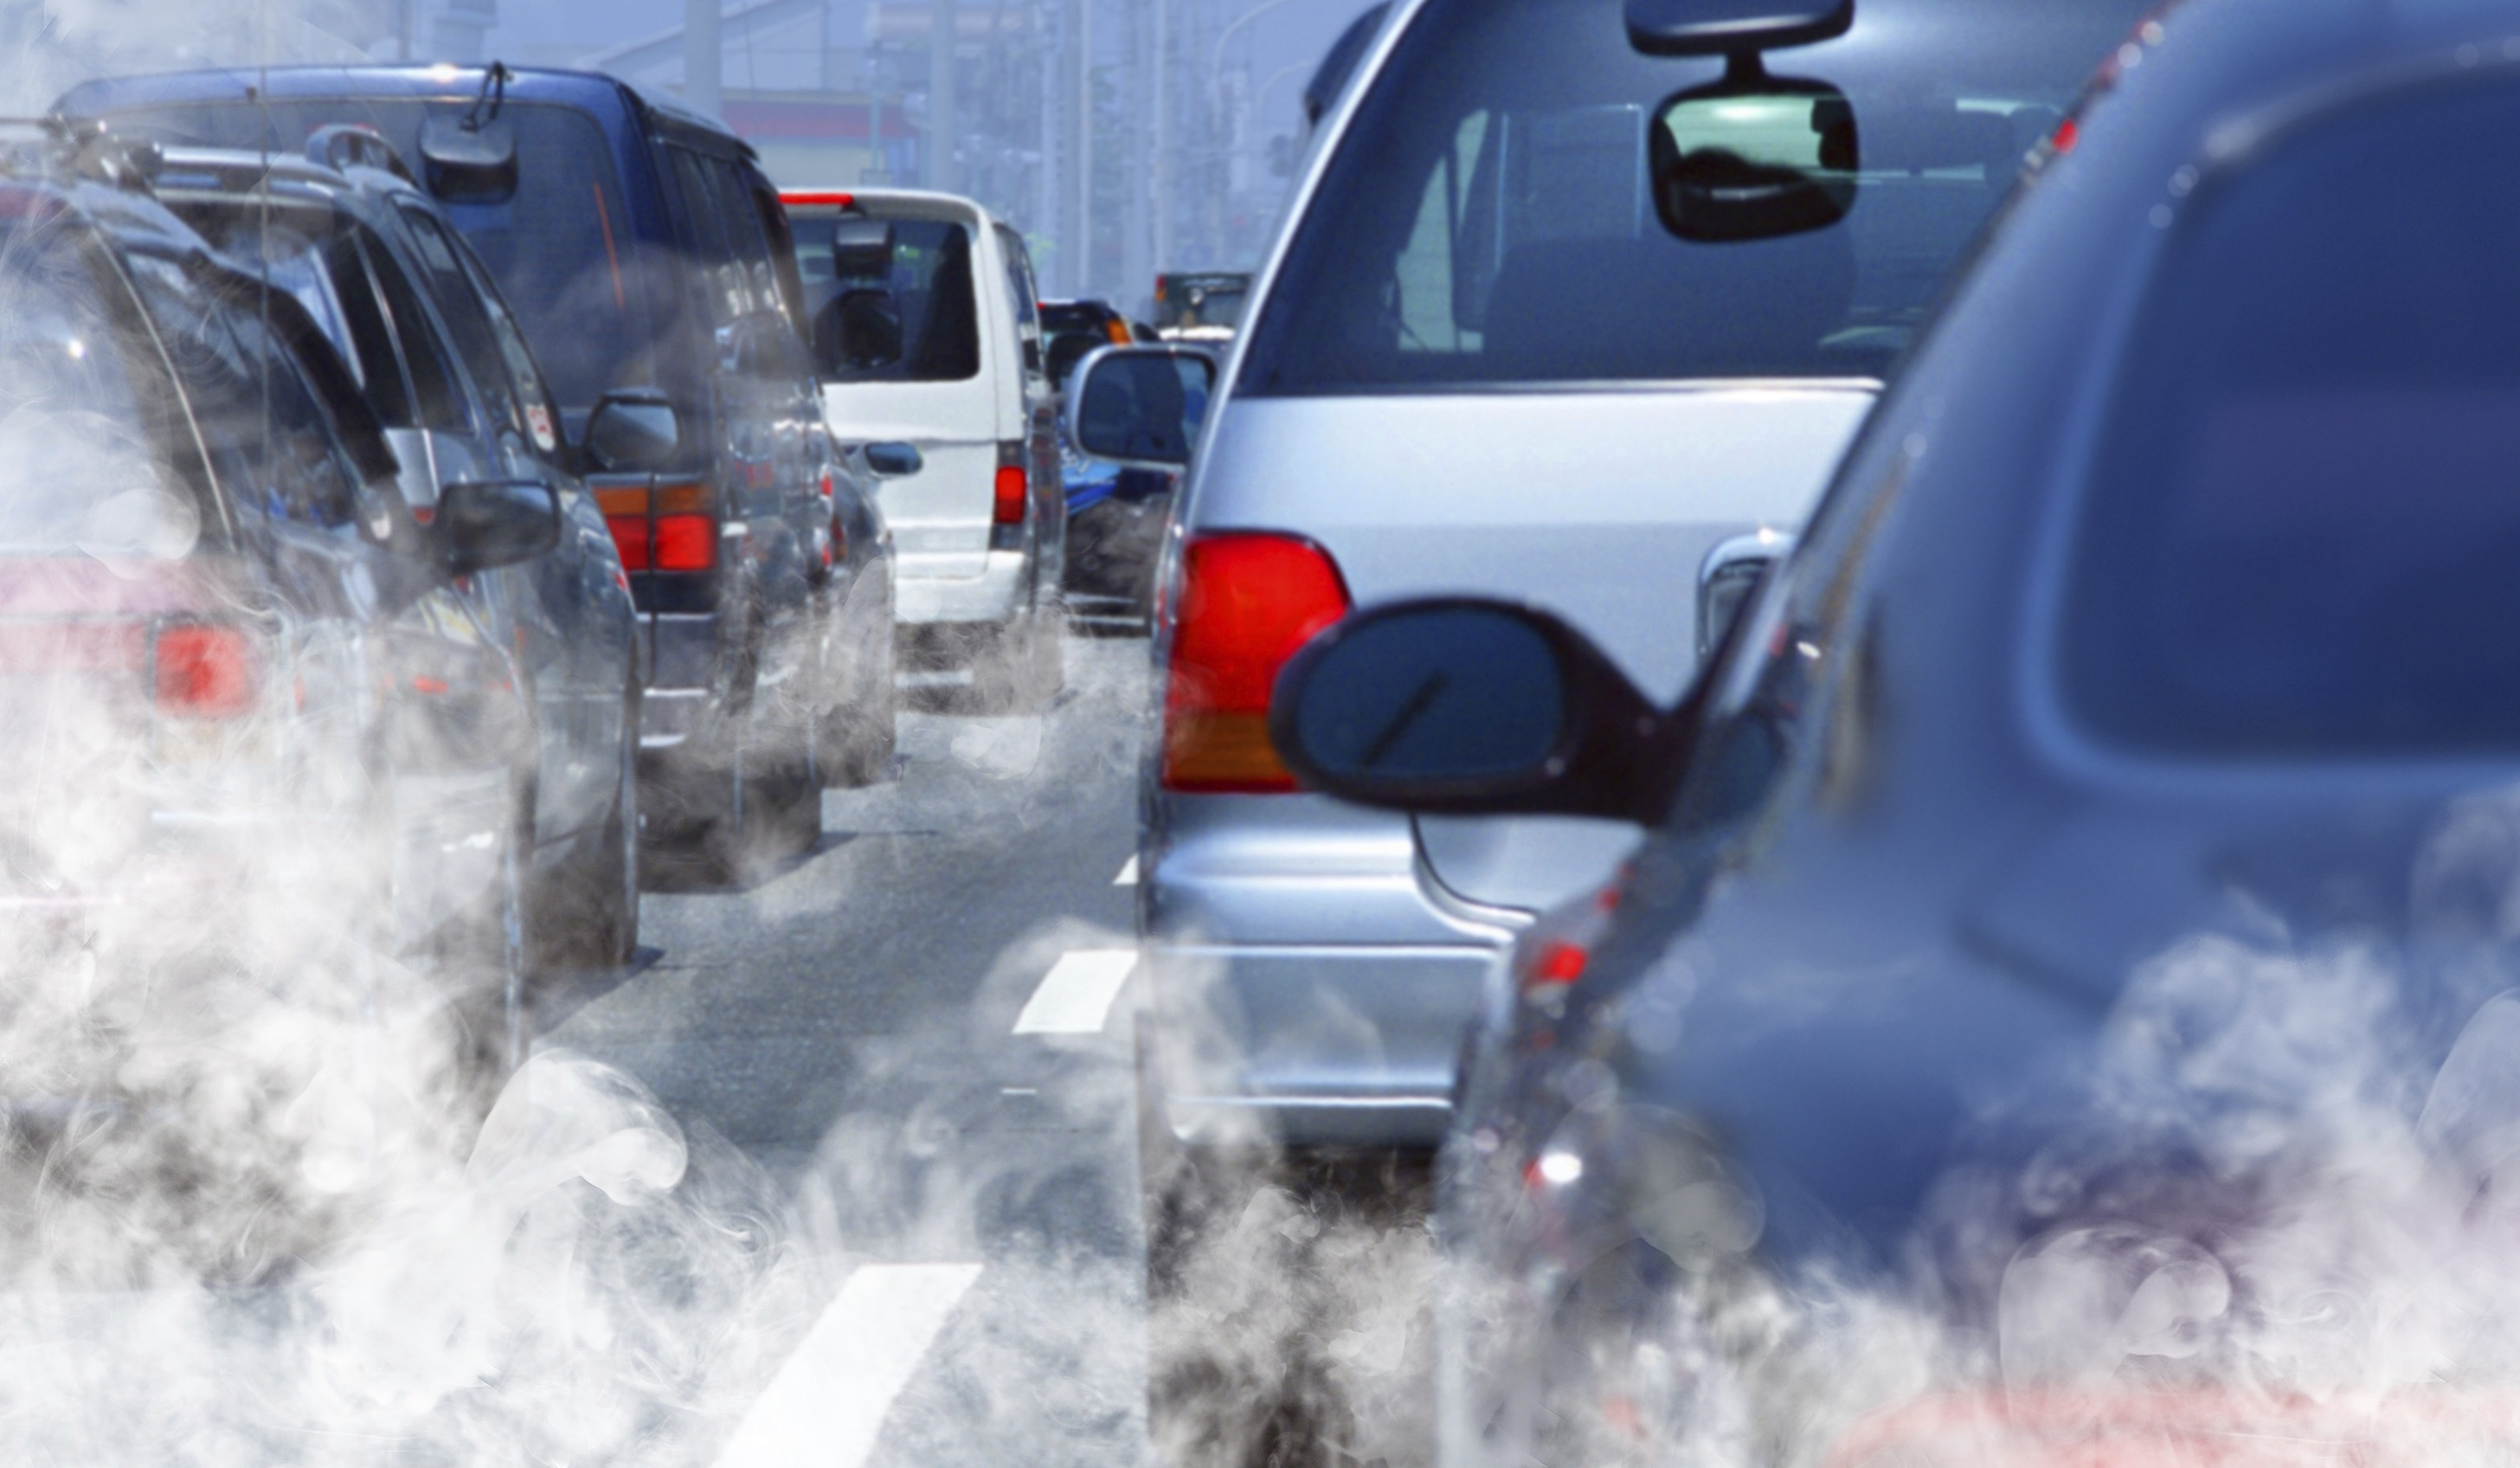 Cars in traffic producing smog.